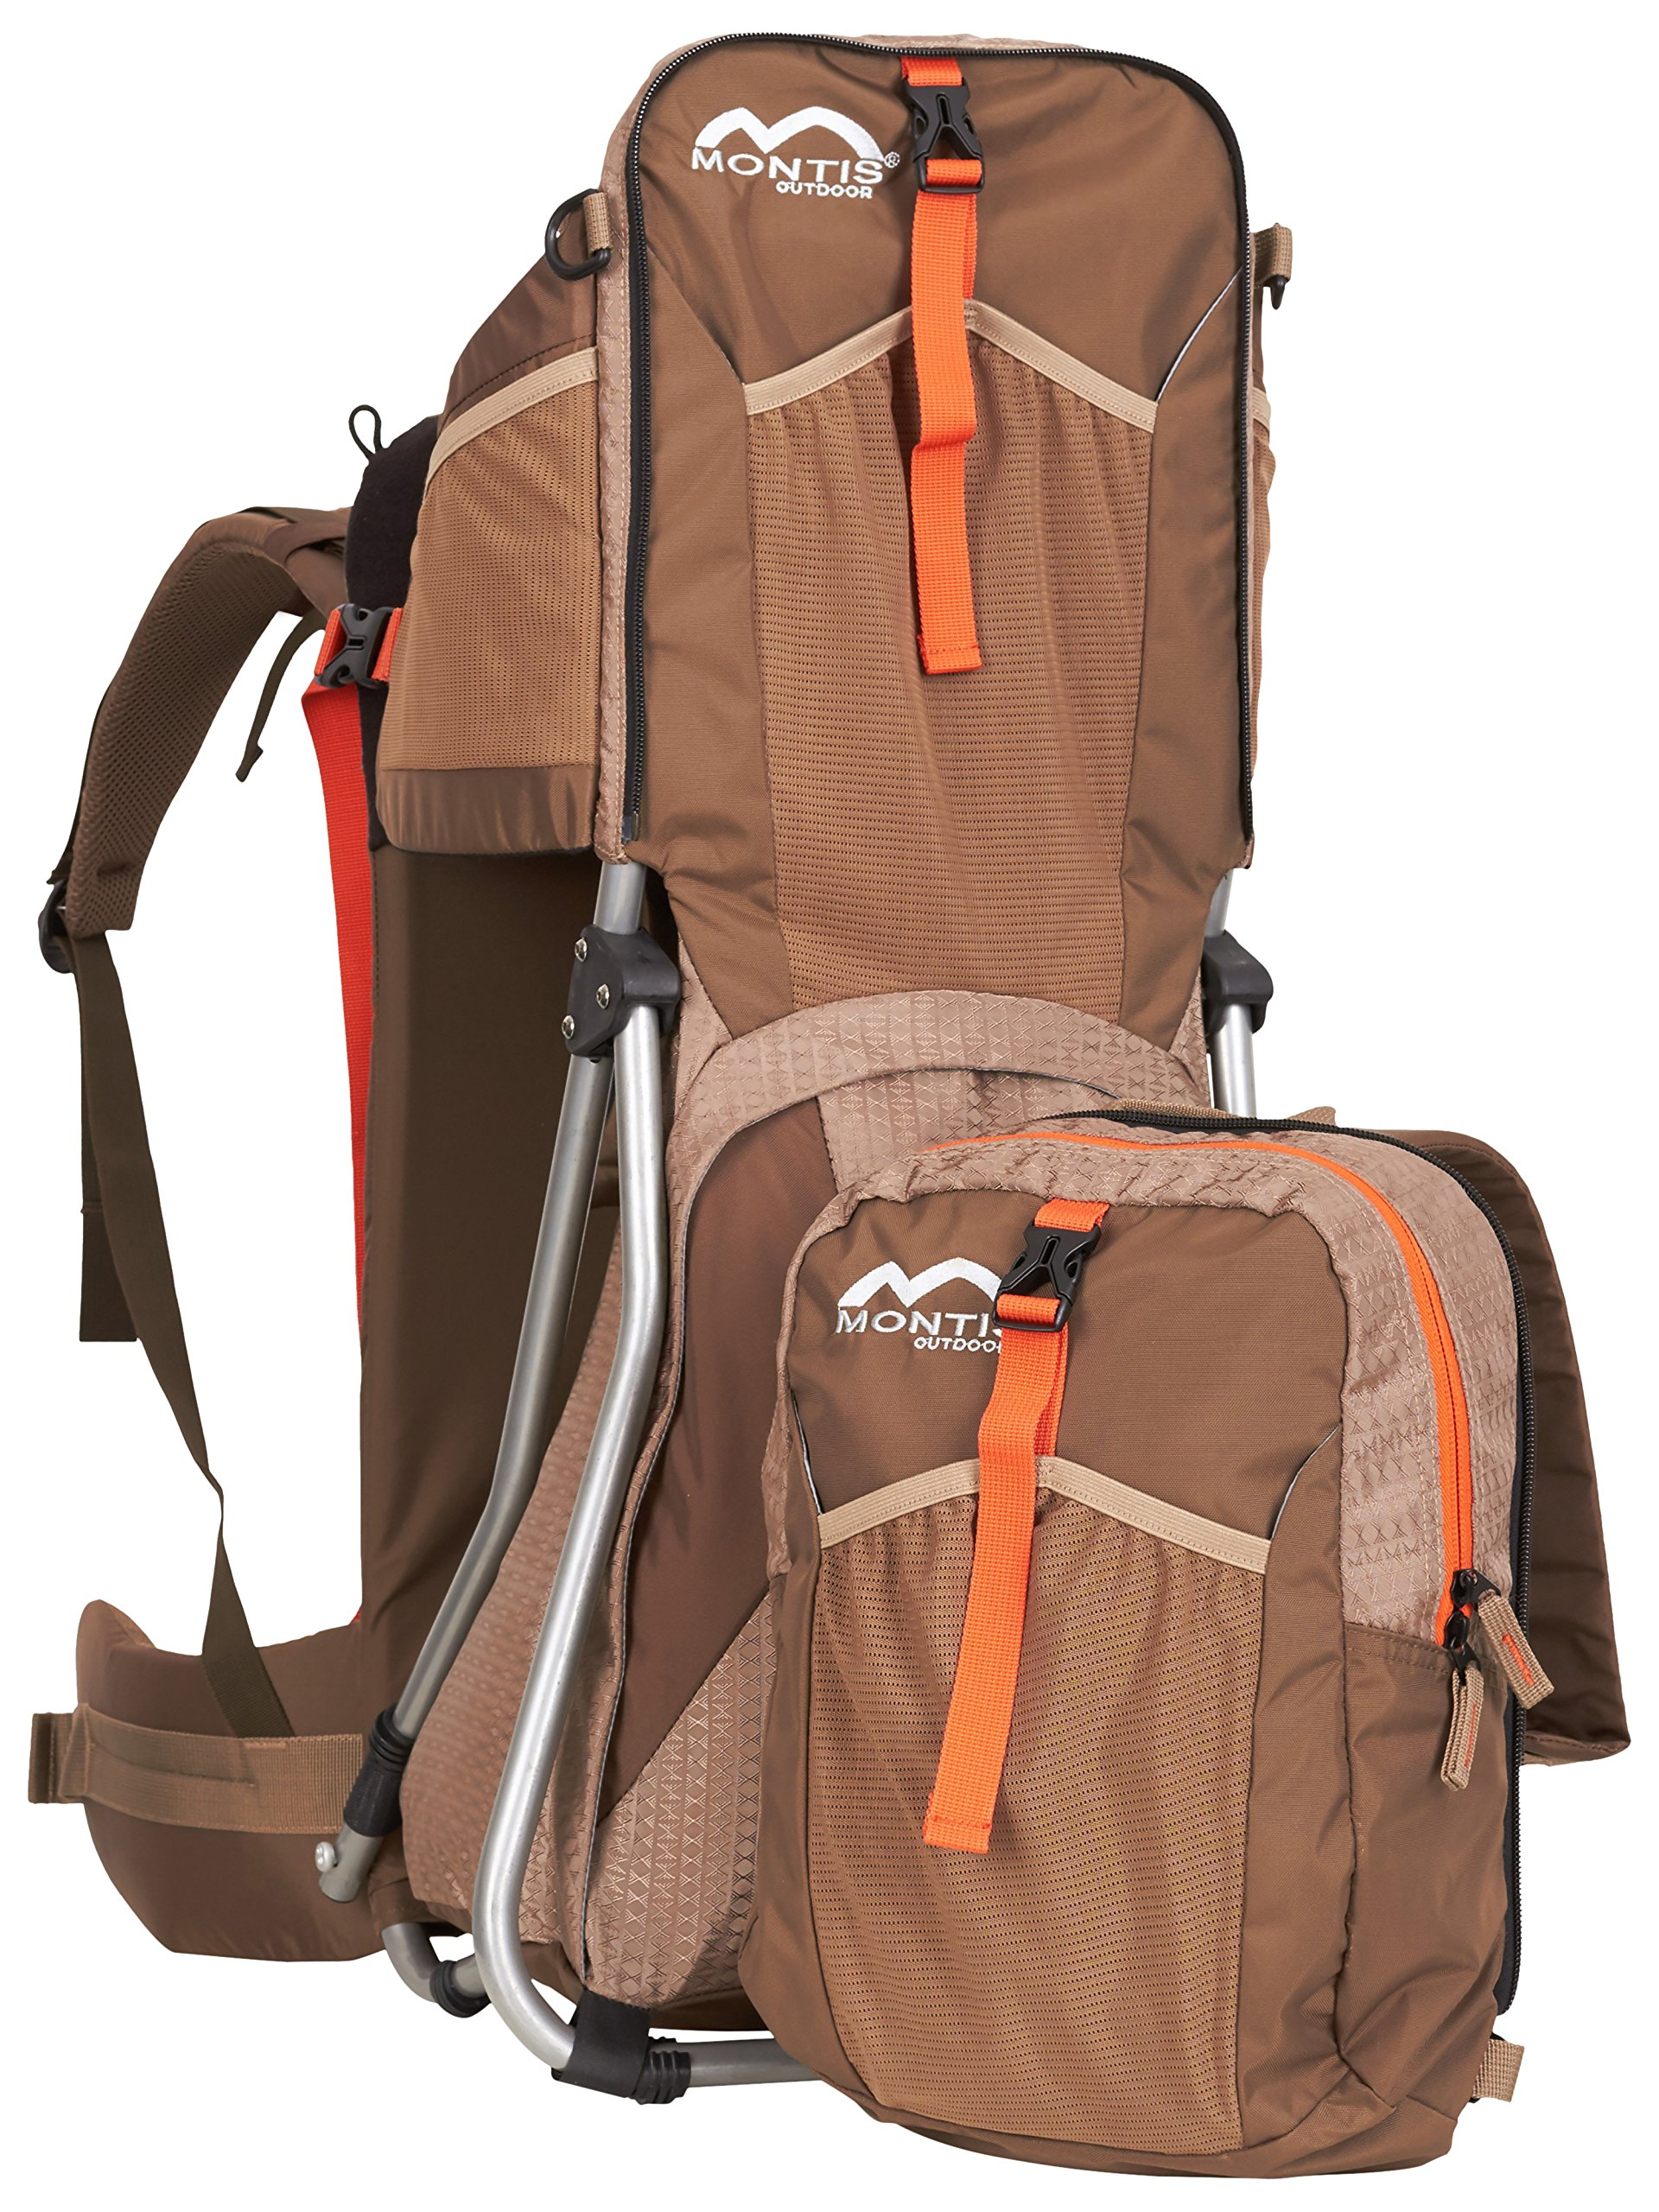 MONTIS HIKE, Premium Back Baby/Child Carrier, Up to 25kg, (mocha) M MONTIS OUTDOOR 89cm high, 37cm wide | up to 25kg | various colours | 28L seat bag Laminated and dirt-repellant outer material | approx. 2.2kg (without extras) Fully-adjustable, padded 5-point child's safety harness | plush lining, raised wind guard, can be filled from both sides | forehead cushion 9